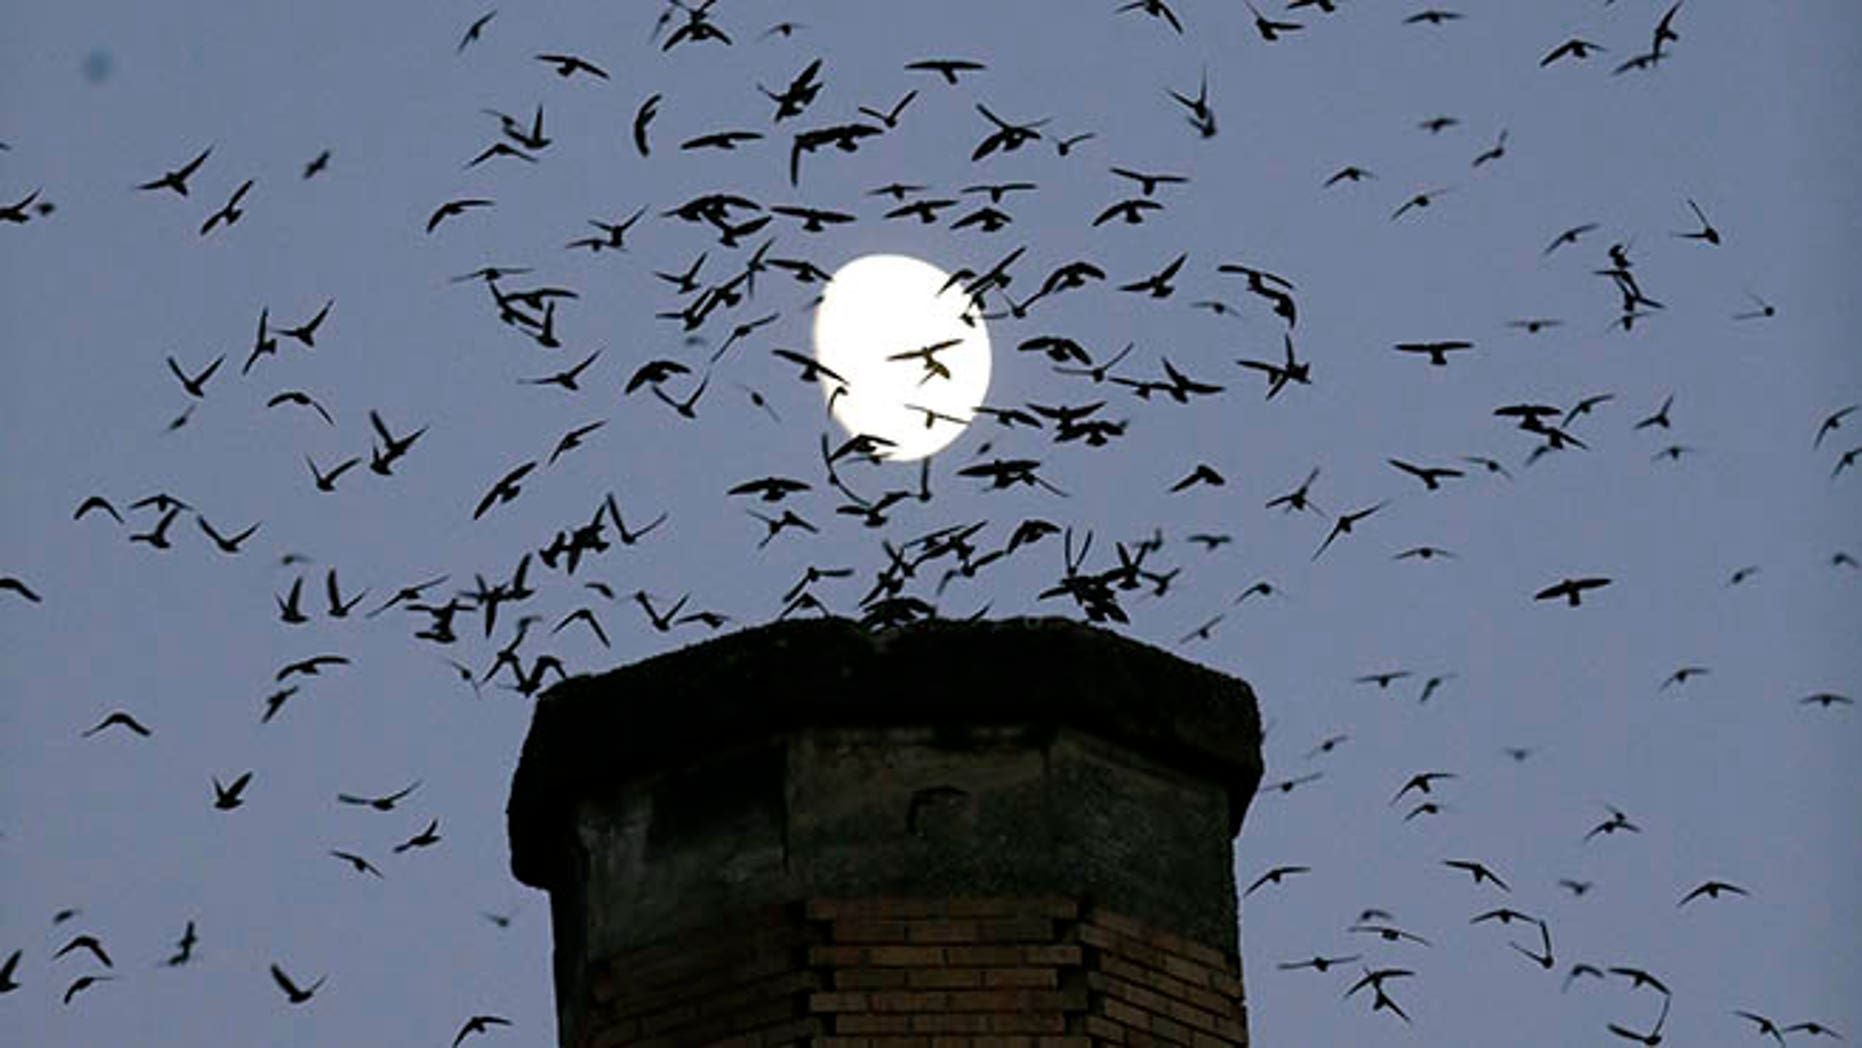 In this Tuesday, Sept. 13, 2016 photo,tThe moon is visible in the background as a multitude of migratory Vaux's Swifts flock to roost for the night inside a large, brick chimney at Chapman Elementary School in Portland, Ore. Numbers of Vaux's Swifts are in decline, in part scientists say because of the destruction of the brick chimneys that they use to roost during their annual fall migration. (AP Photo/Don Ryan)